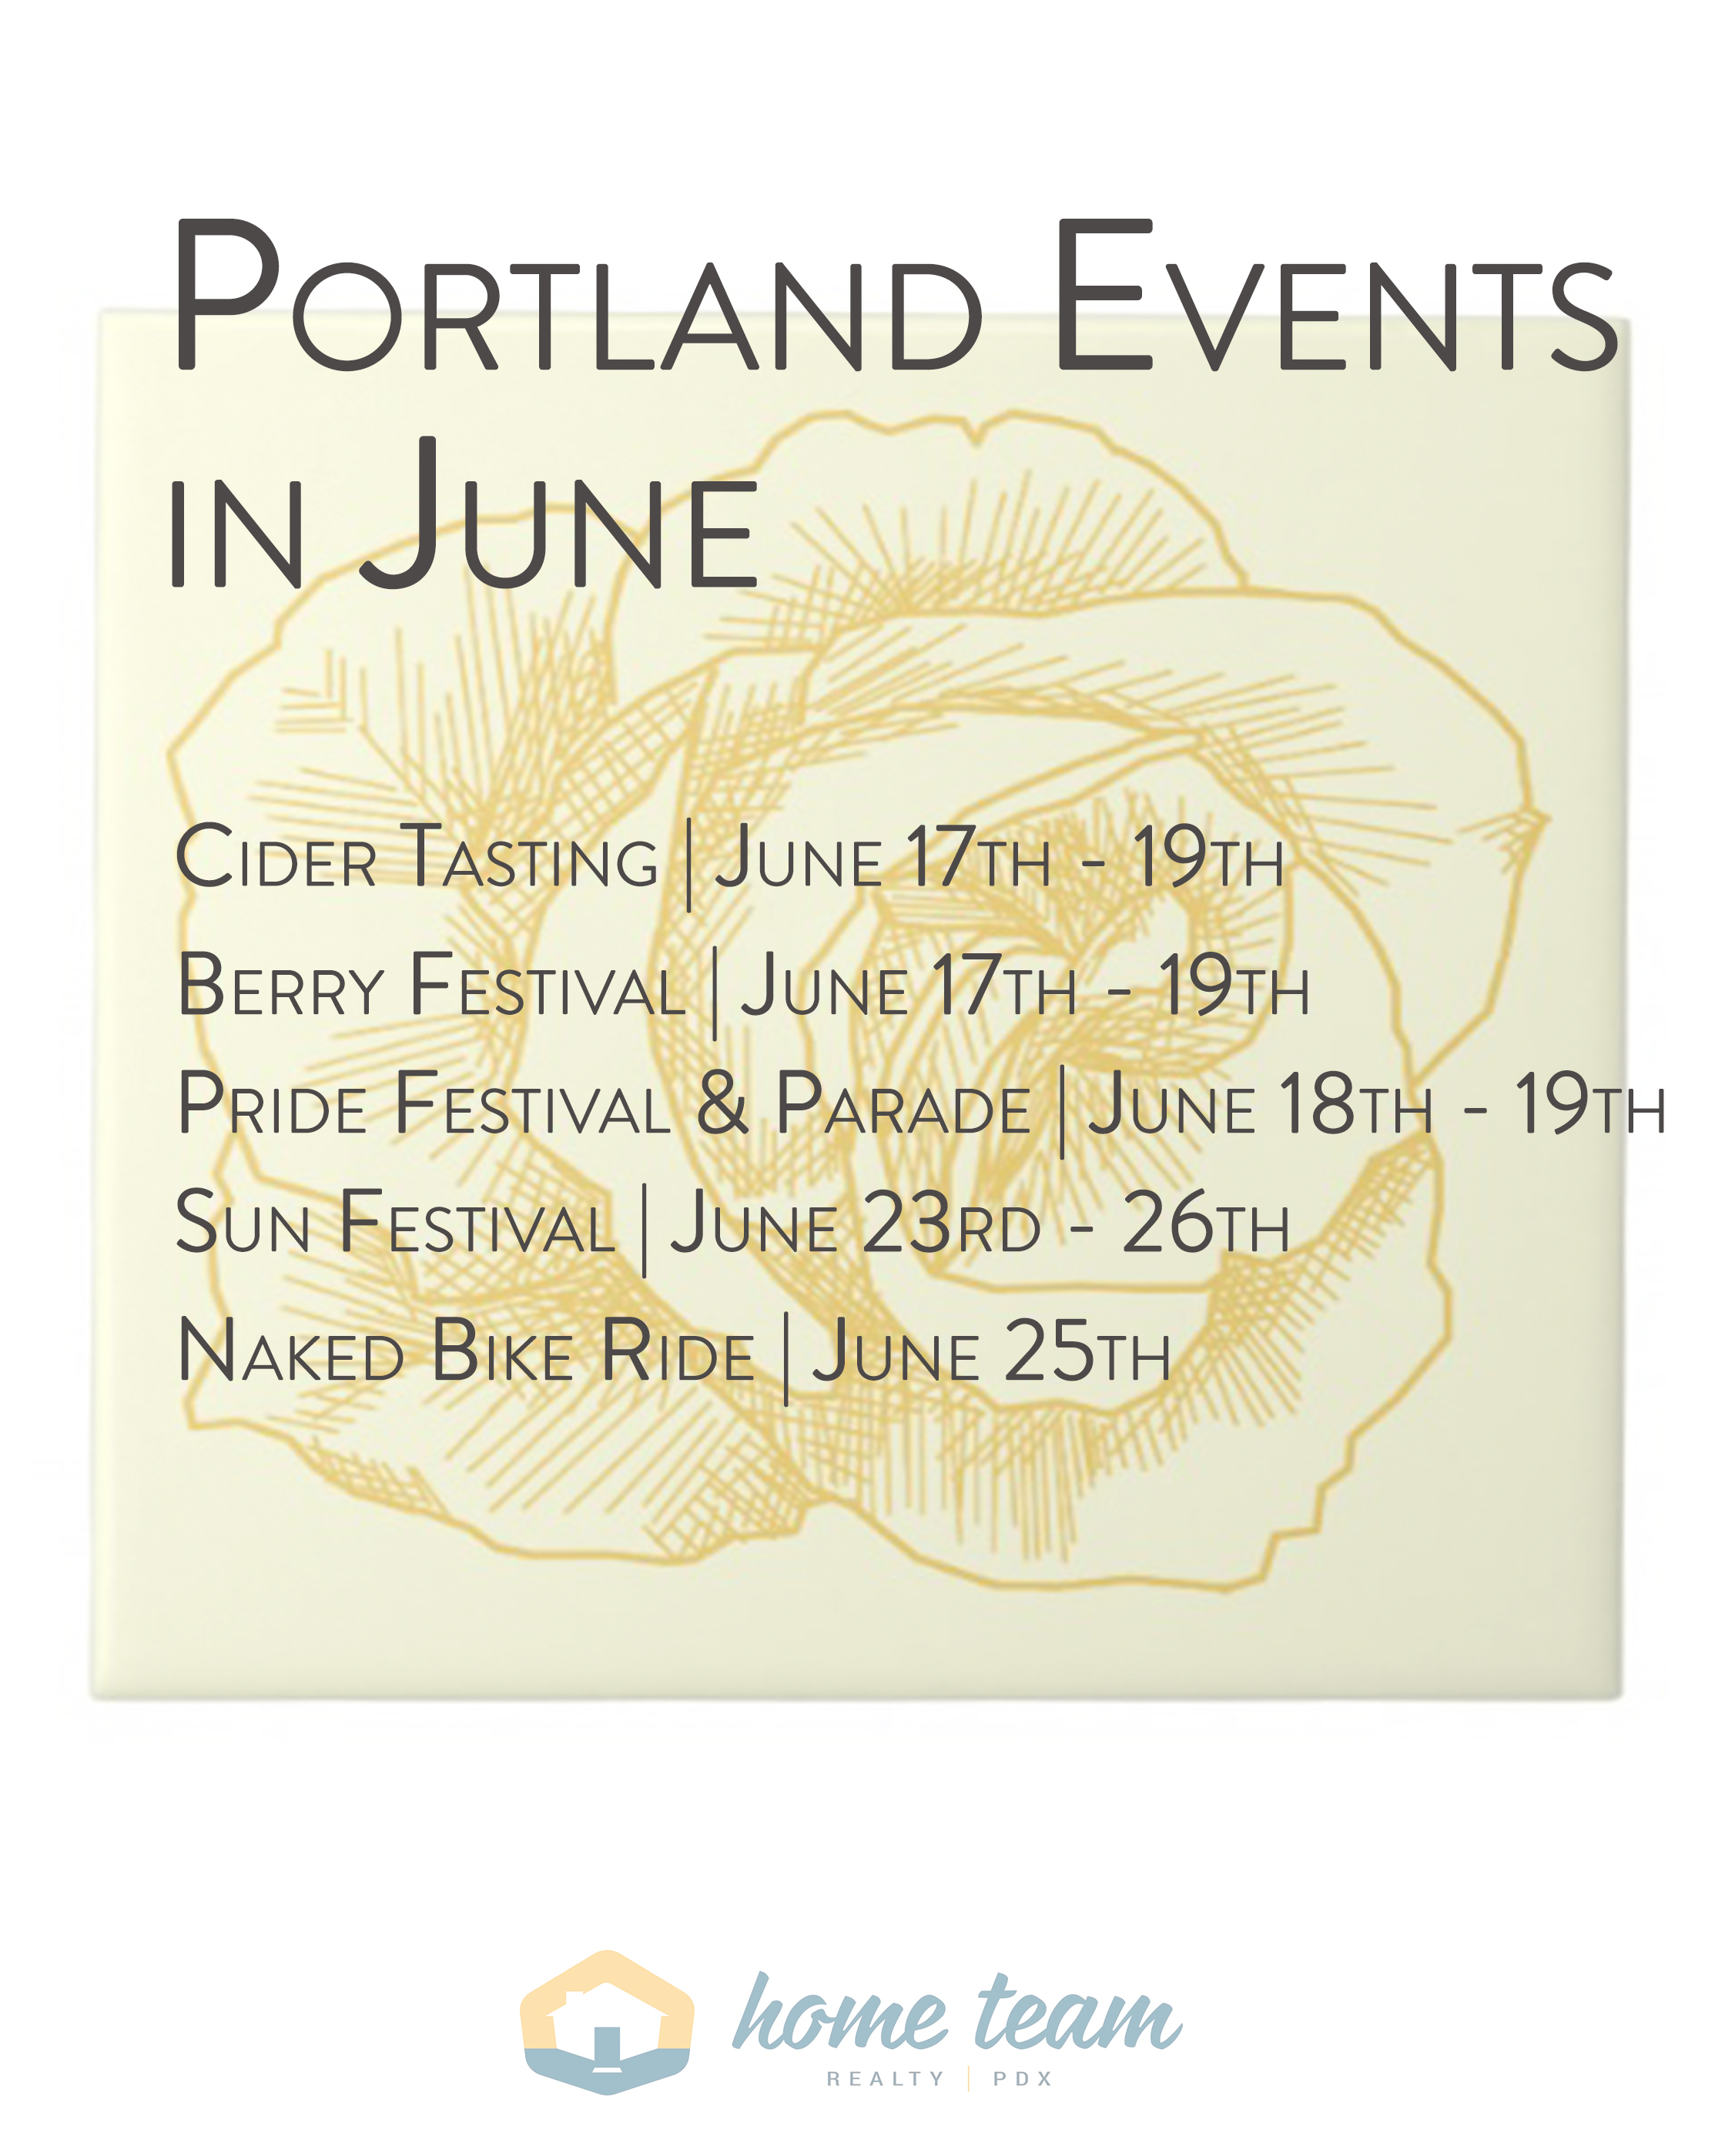 Portland Events in June